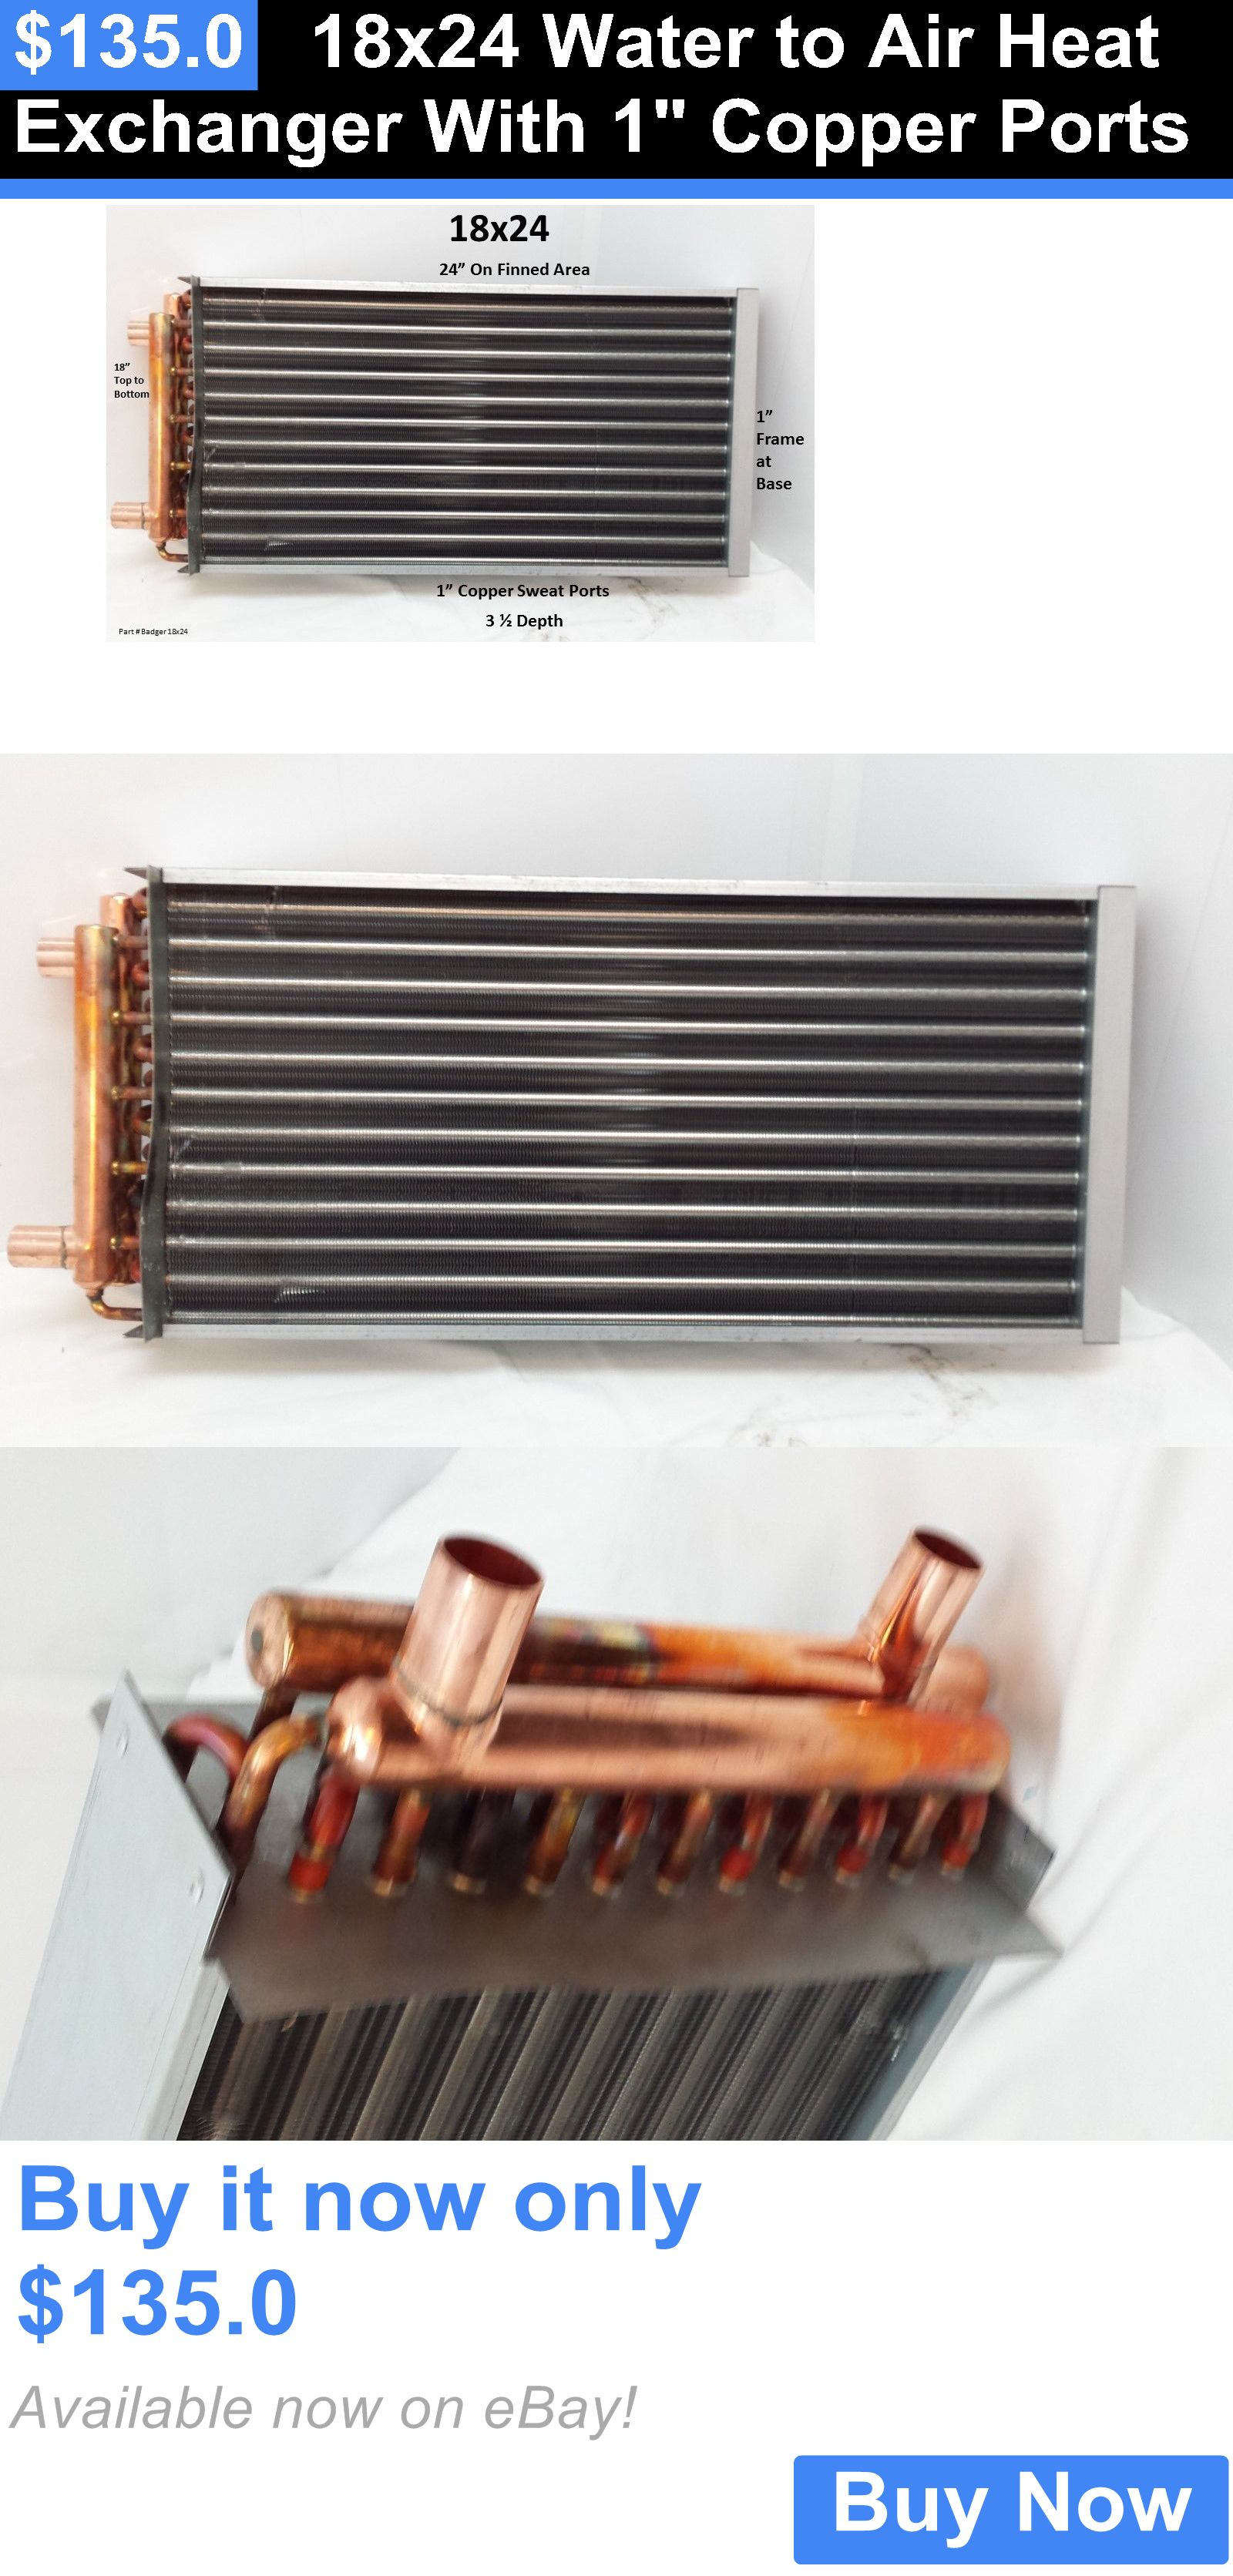 materials 18X24 Water To Air Heat Exchanger With 1 Copper